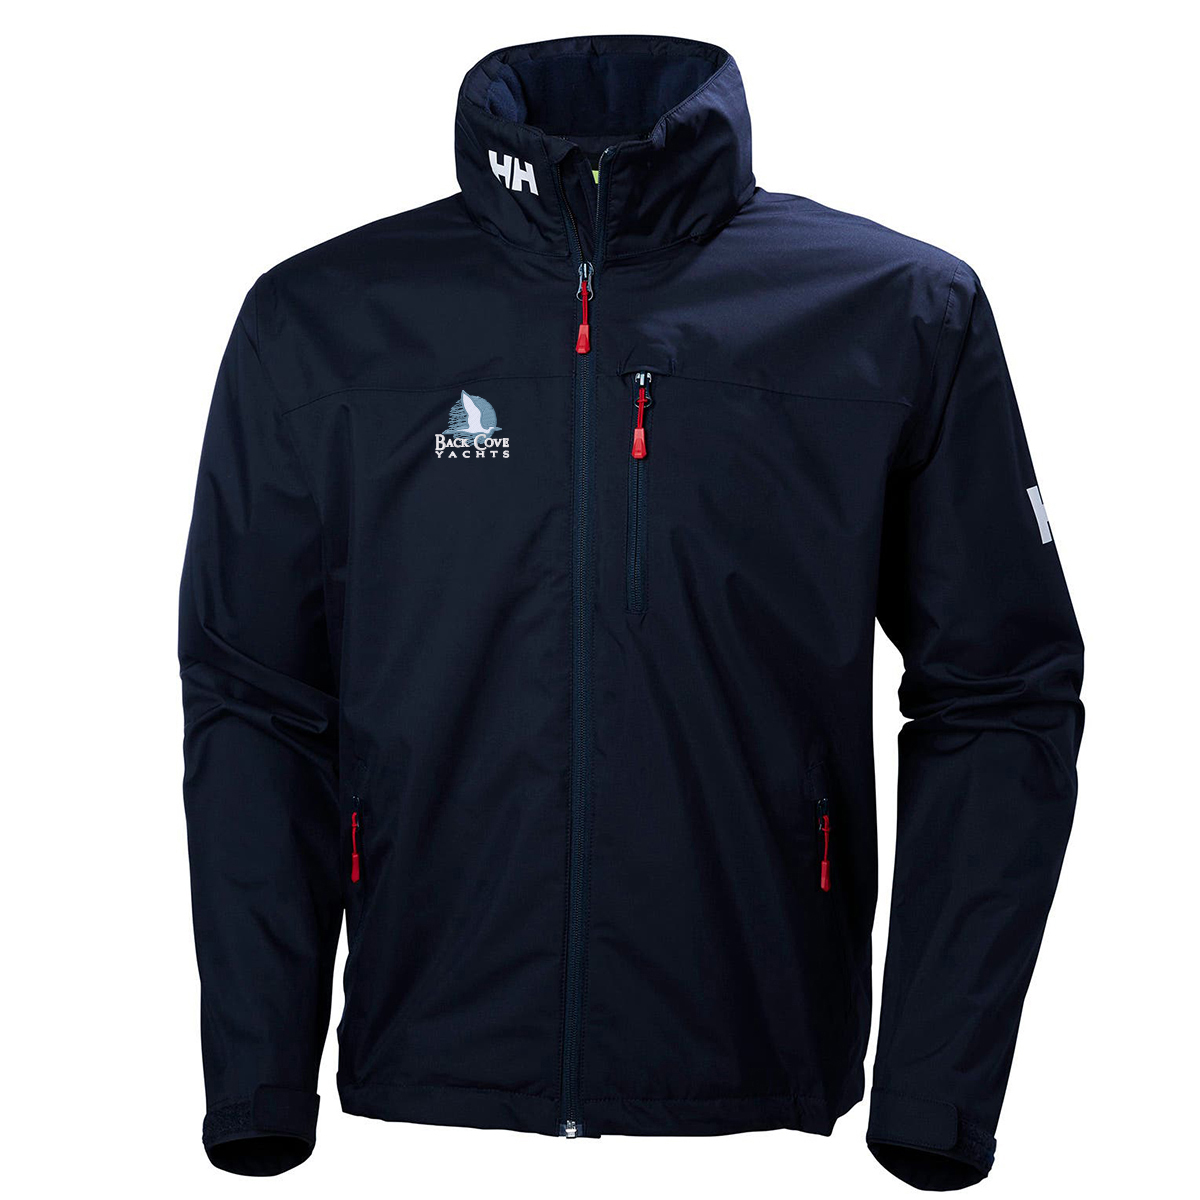 Back Cove Yachts - Helly Hansen Men's Hooded Crew Jacket